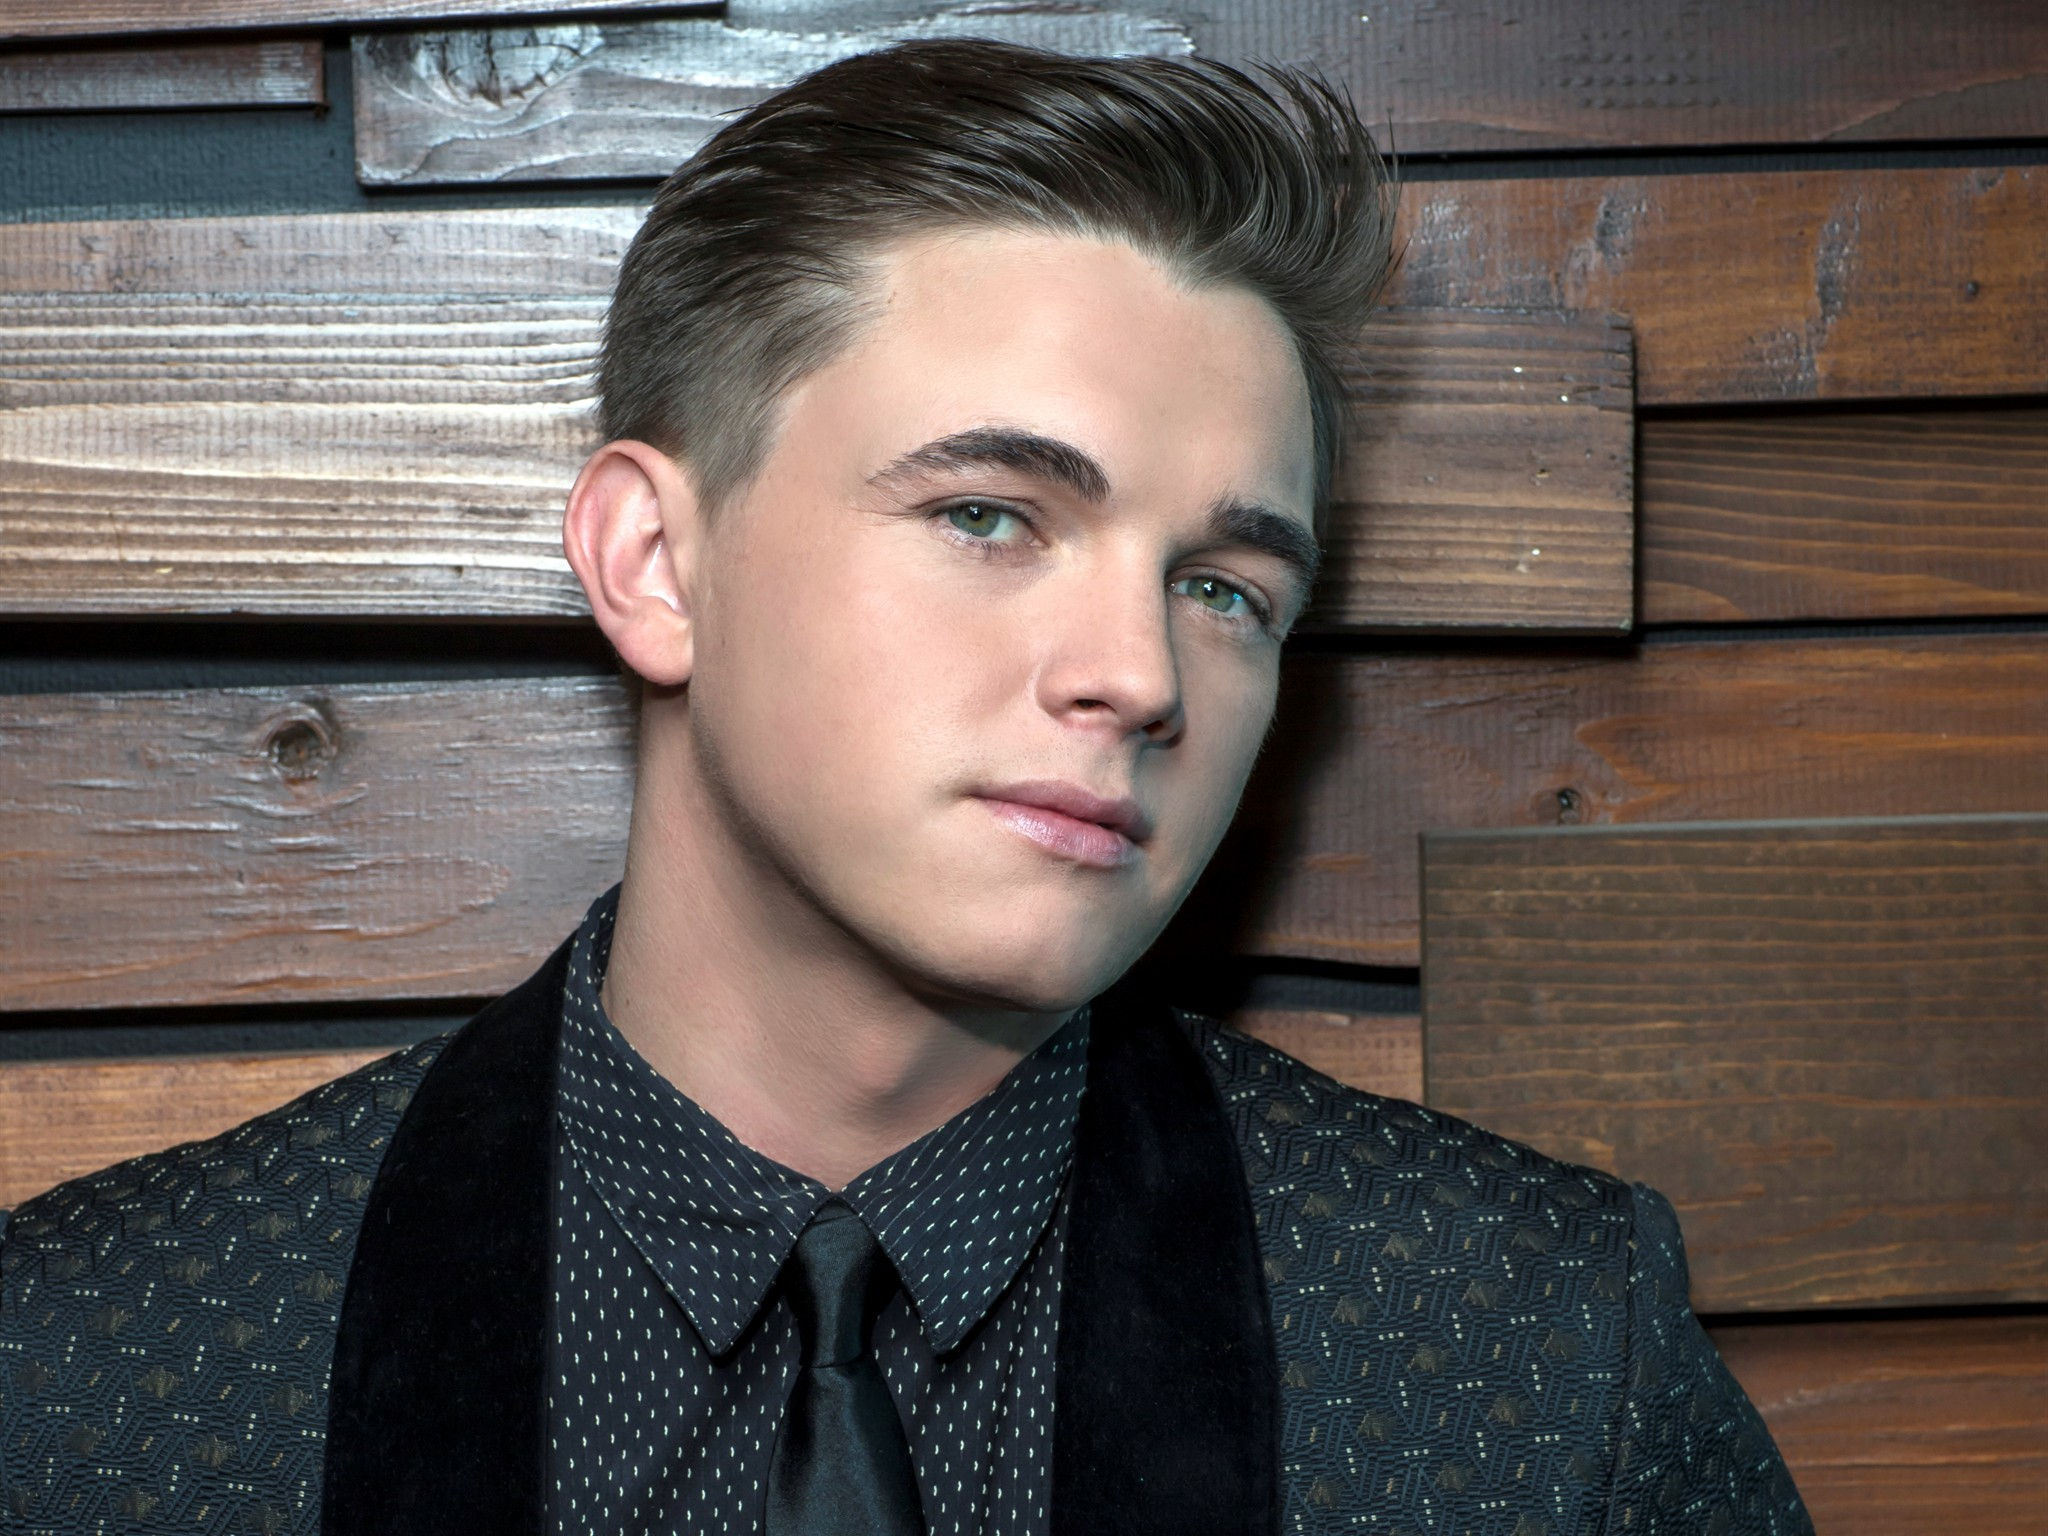 2048x1536 ... Image Wallpaper Jesse mccartney, Guy, Blond, Face HD, Picture, ...